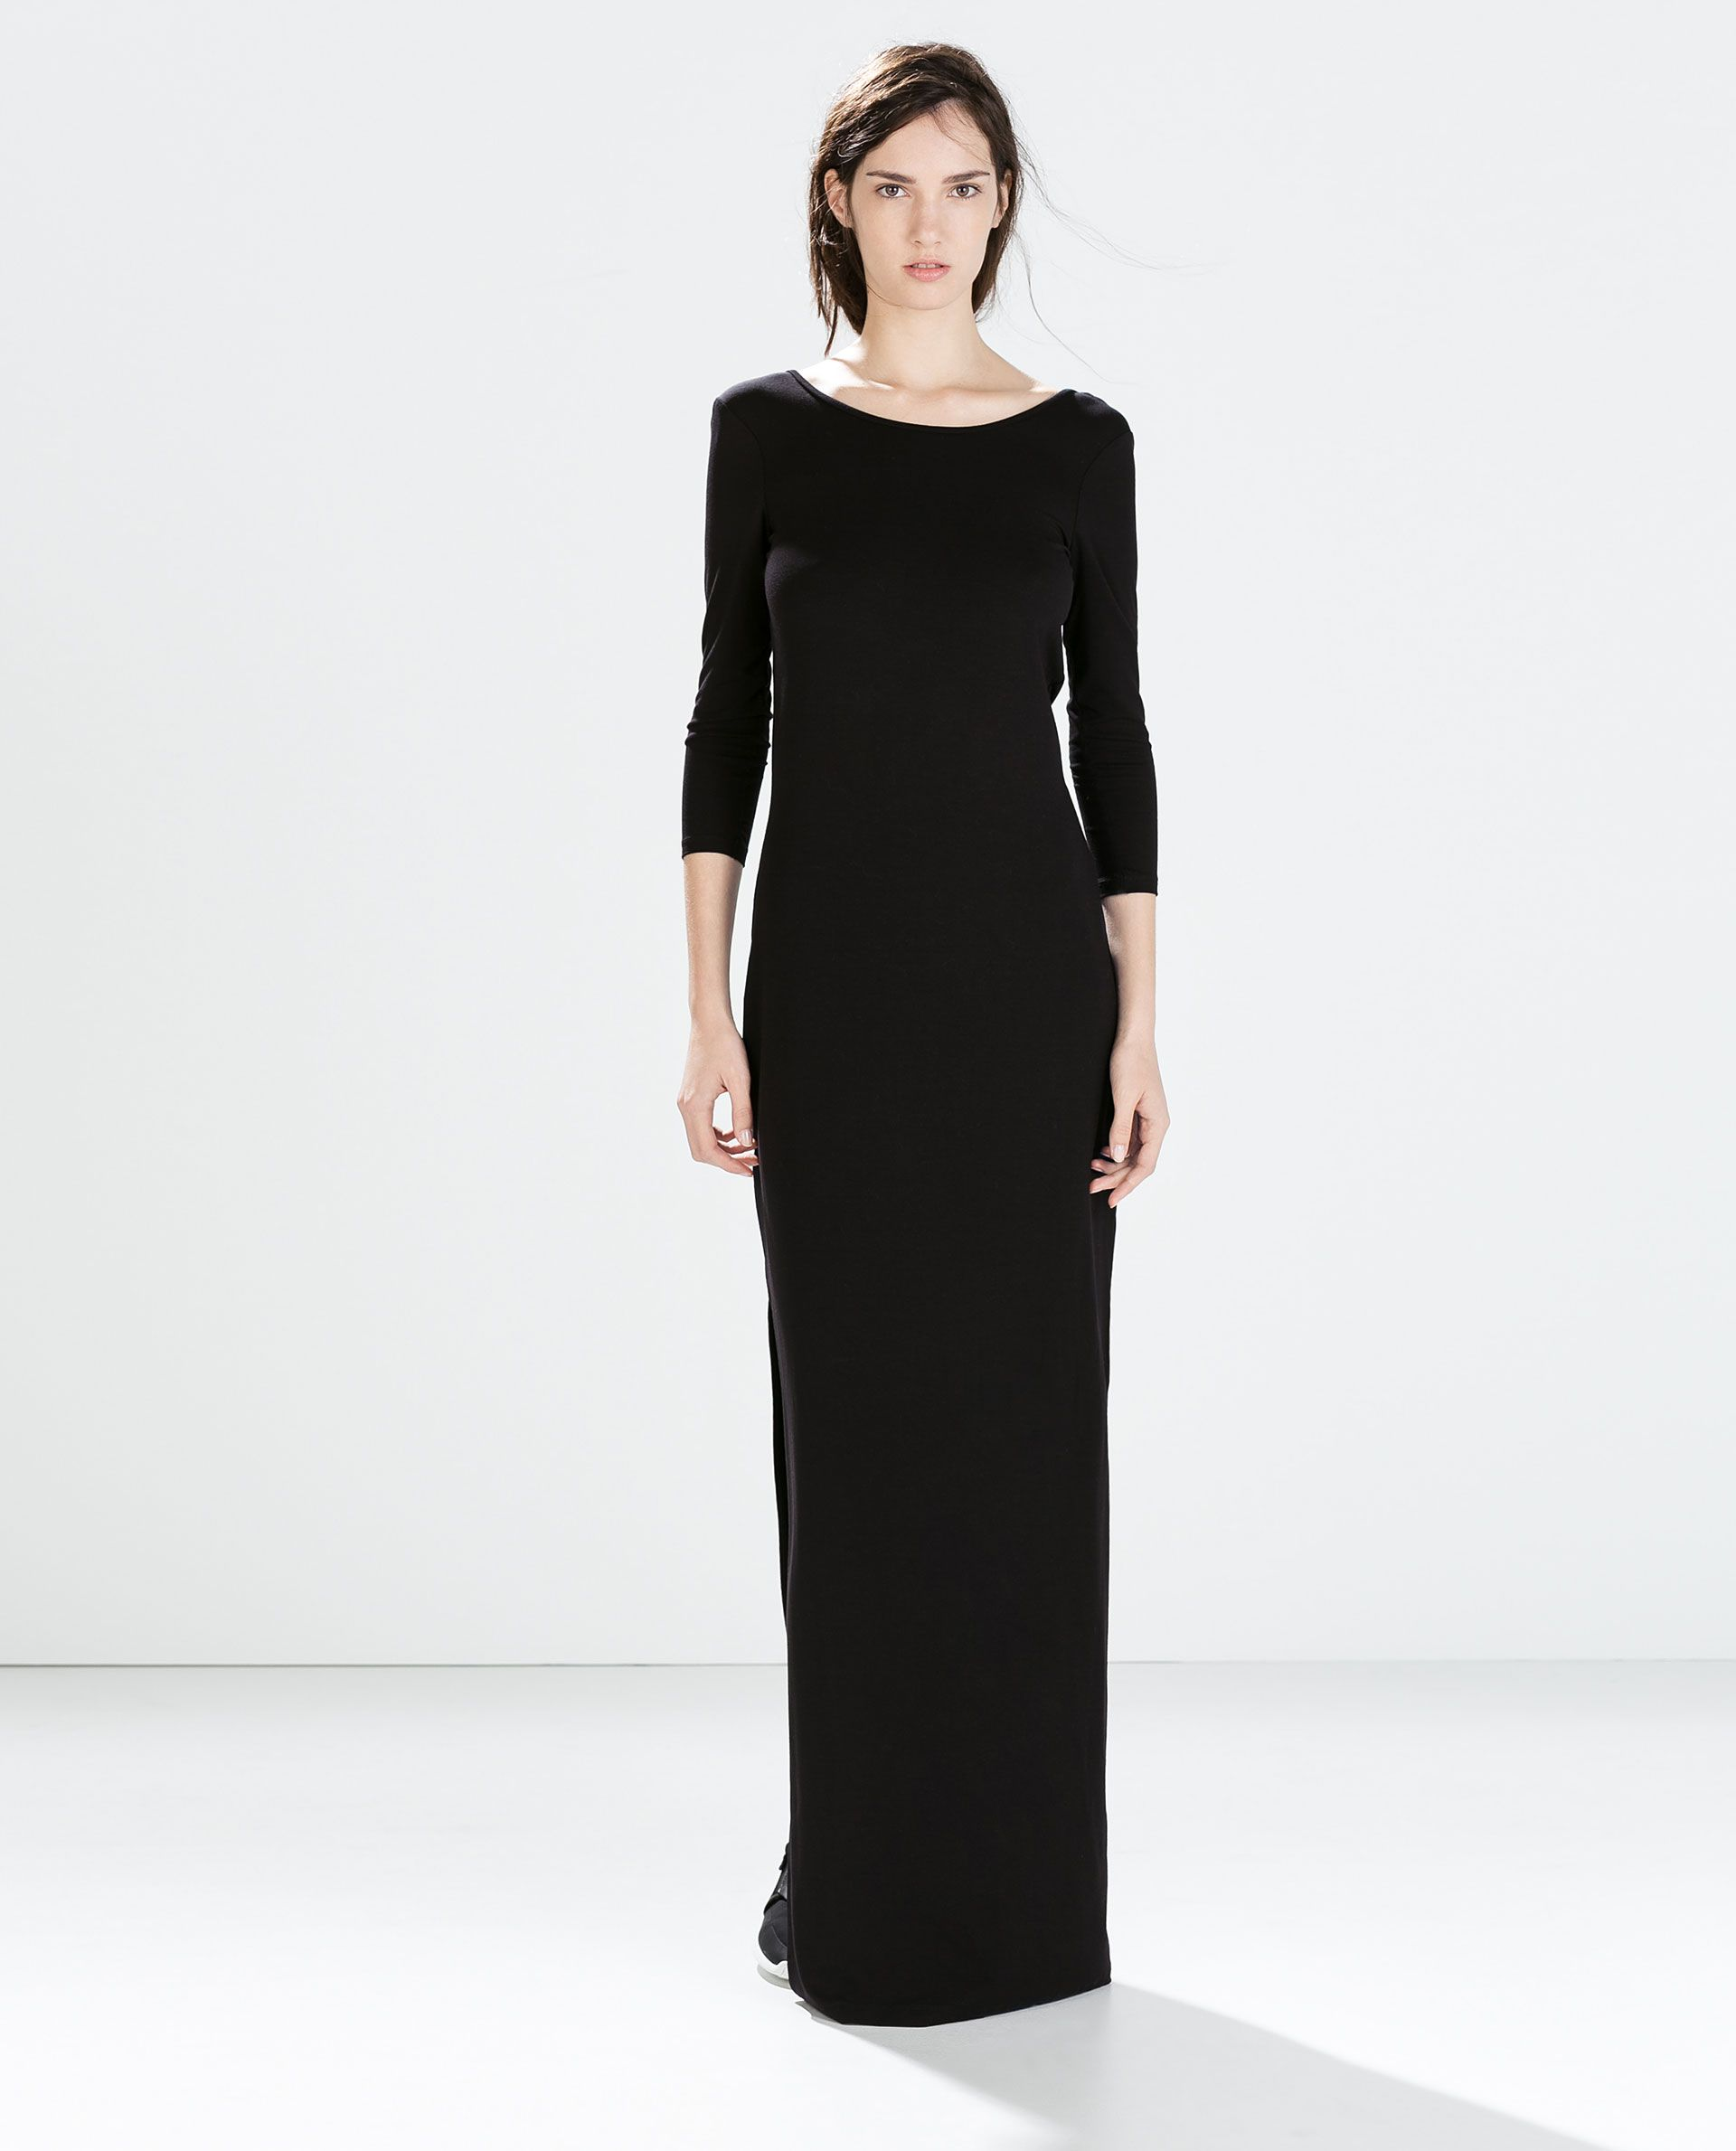 long dress - dresses - knitwear - woman | zara united states